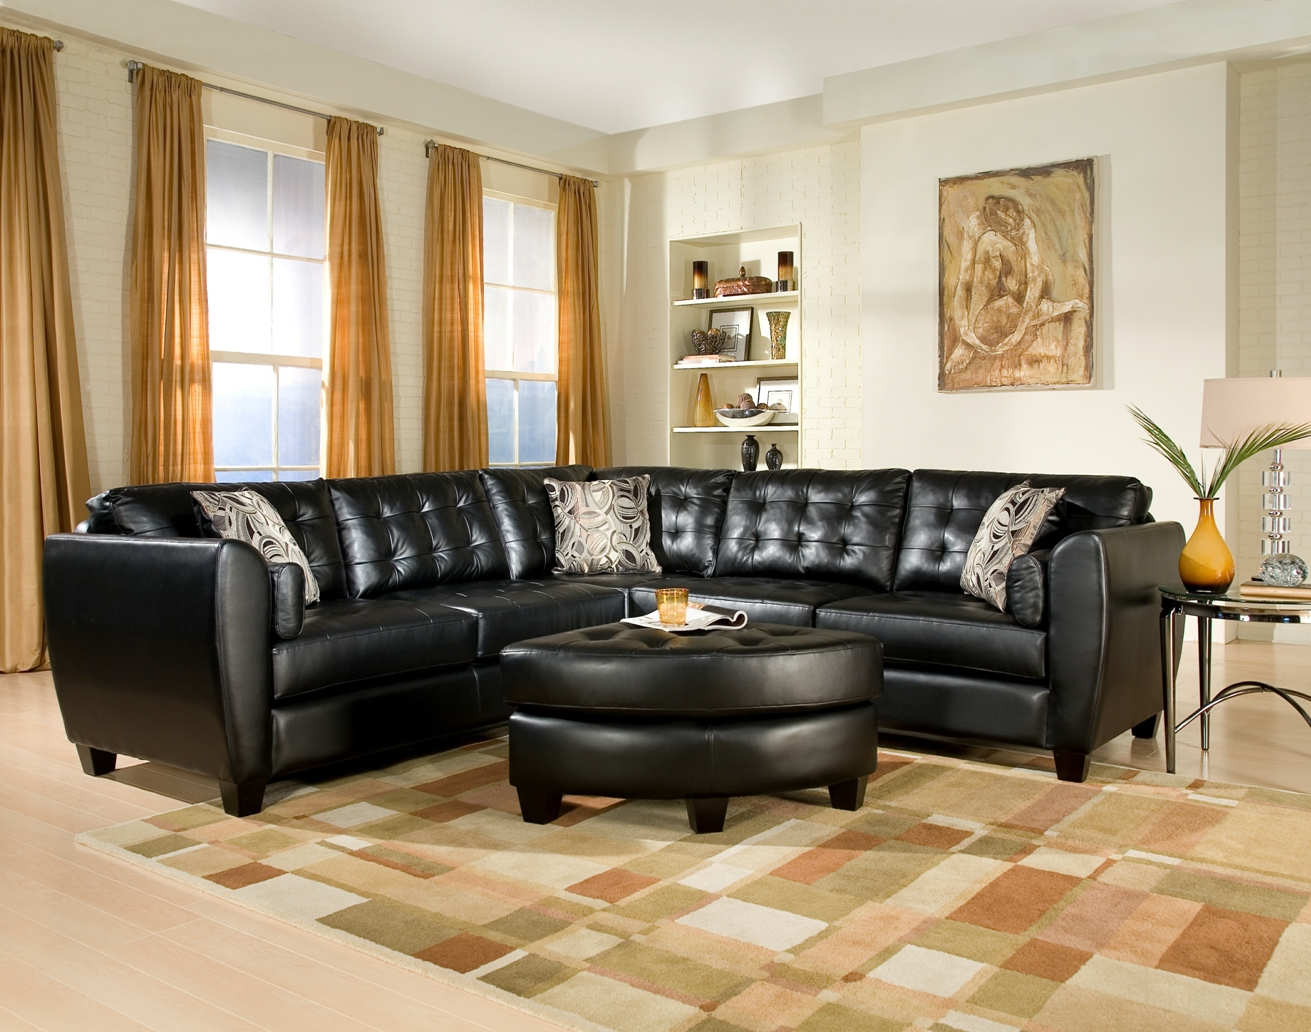 Black Living Room Furniture Decorating Ideas Living Room Ideas With Sectionals Sofa For Small Living